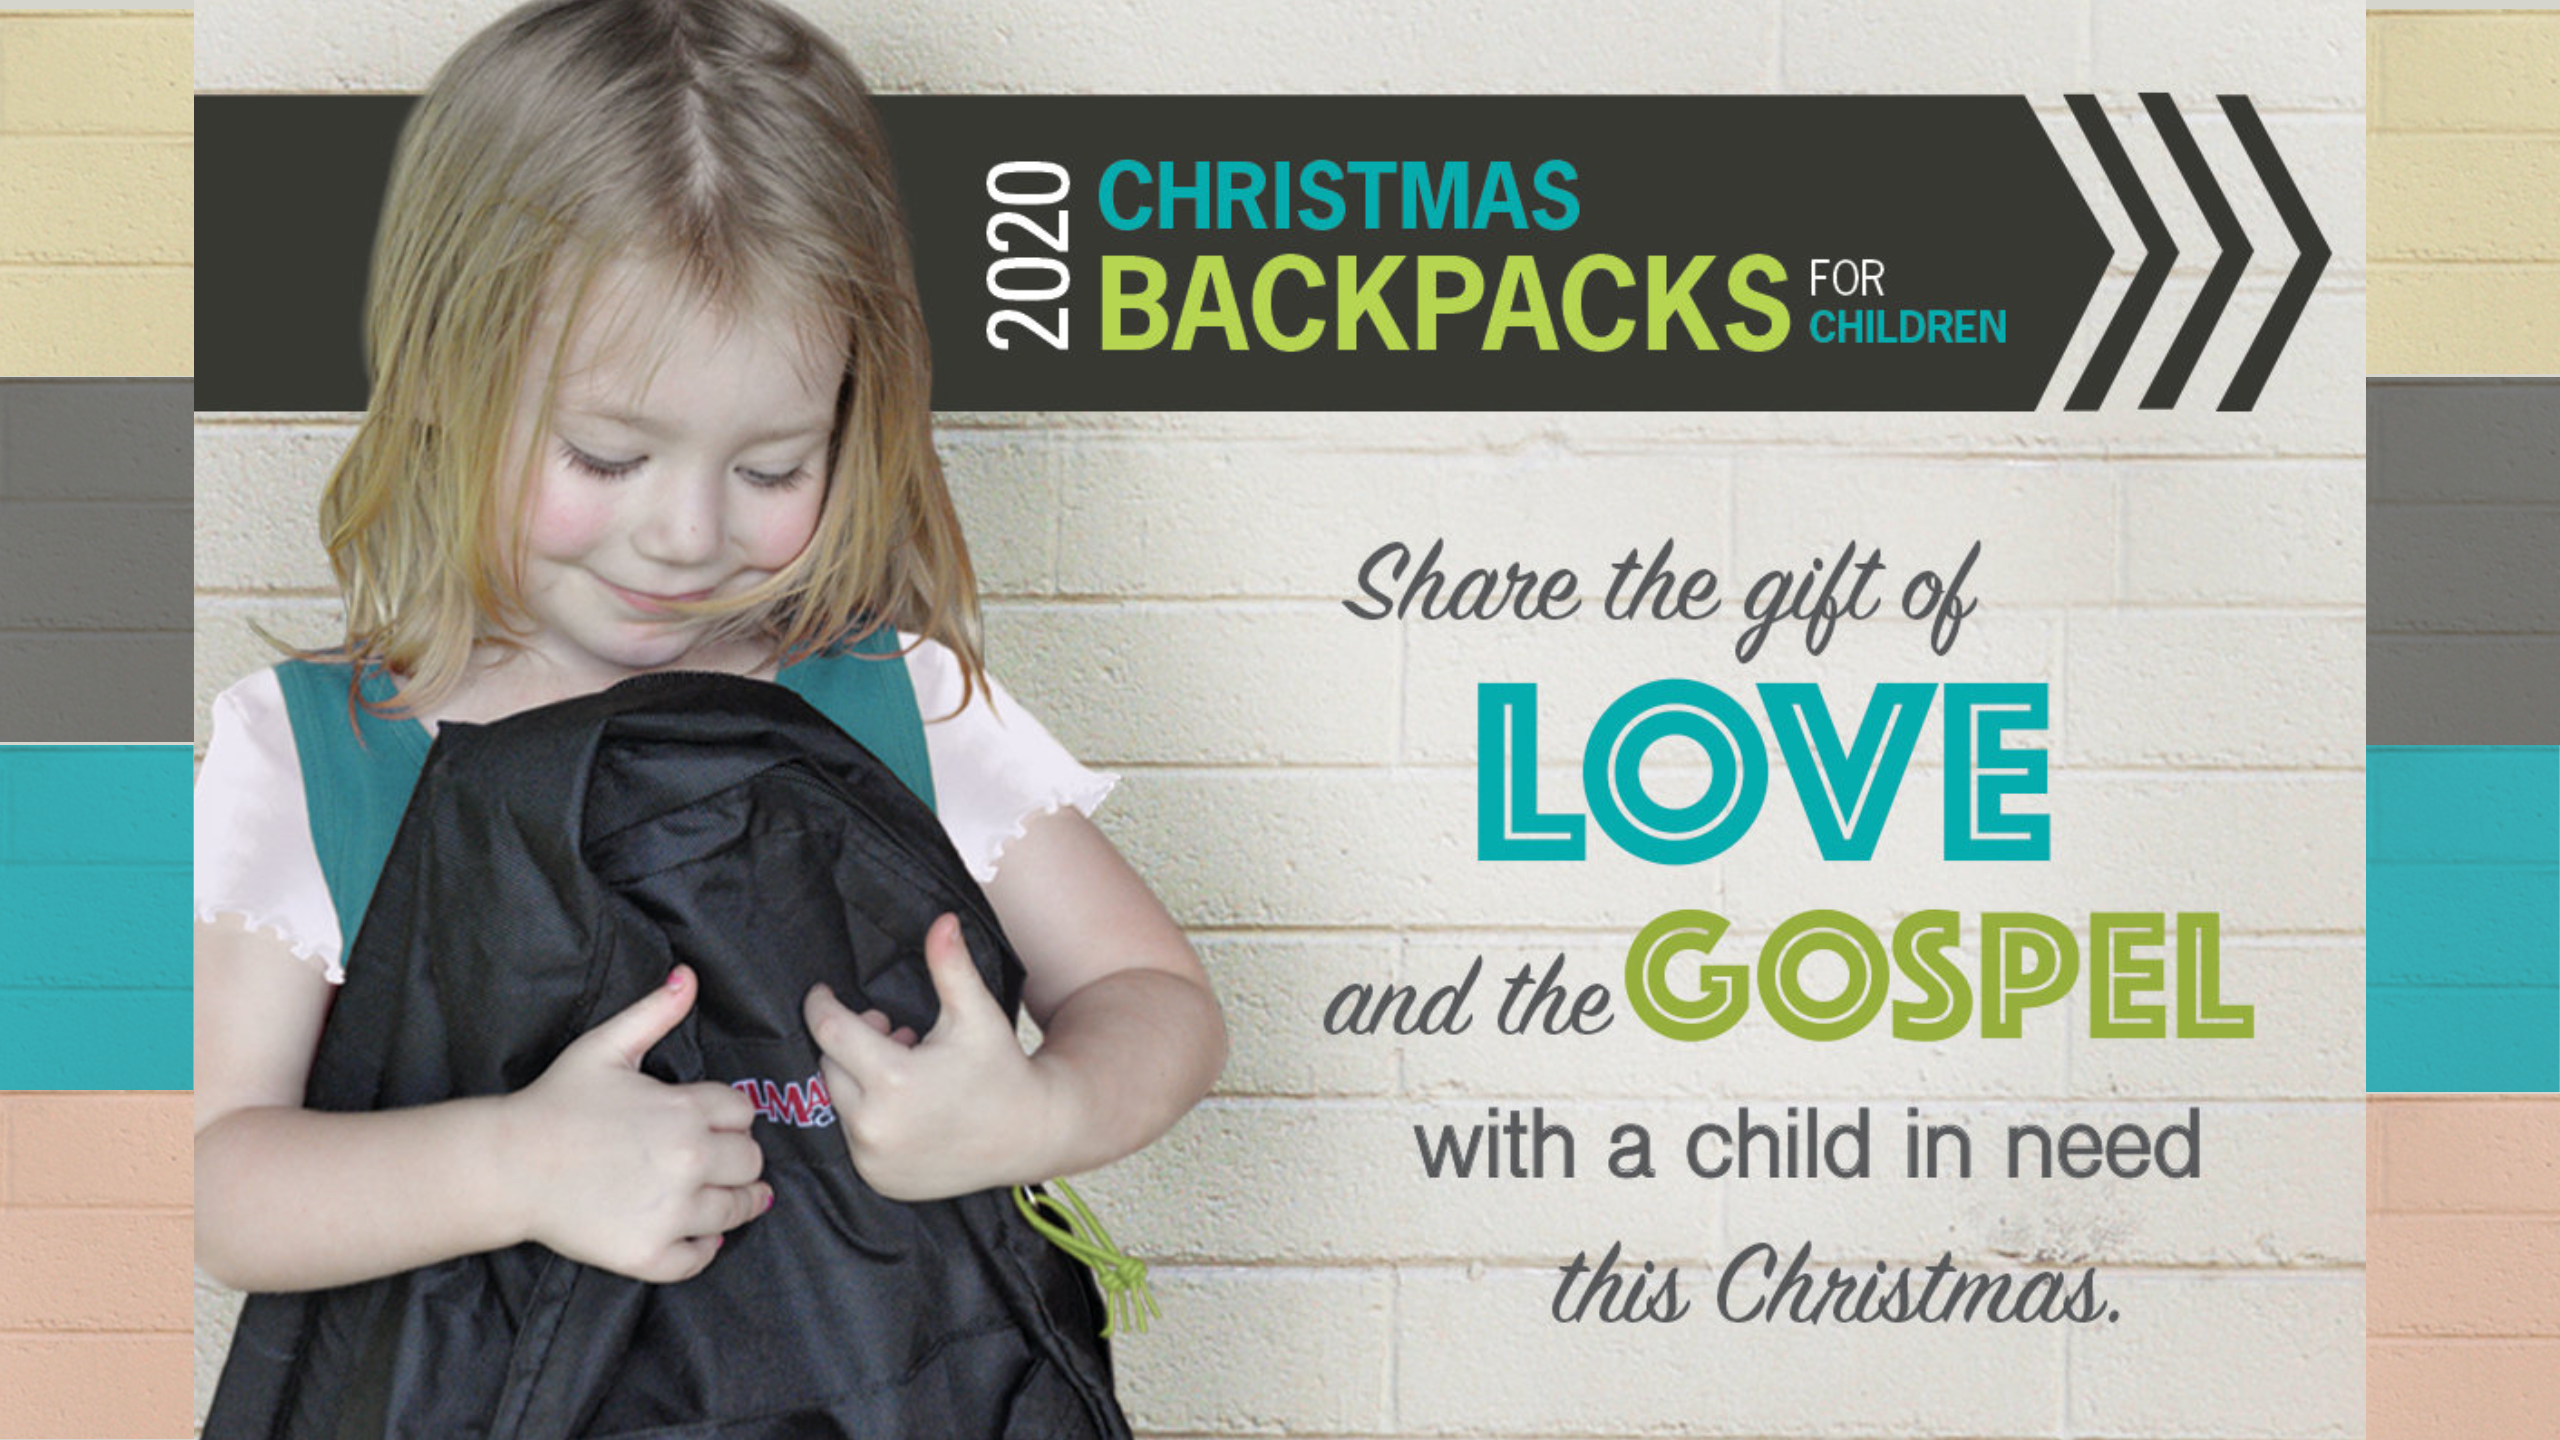 2020 KBC Christmas Backpacks